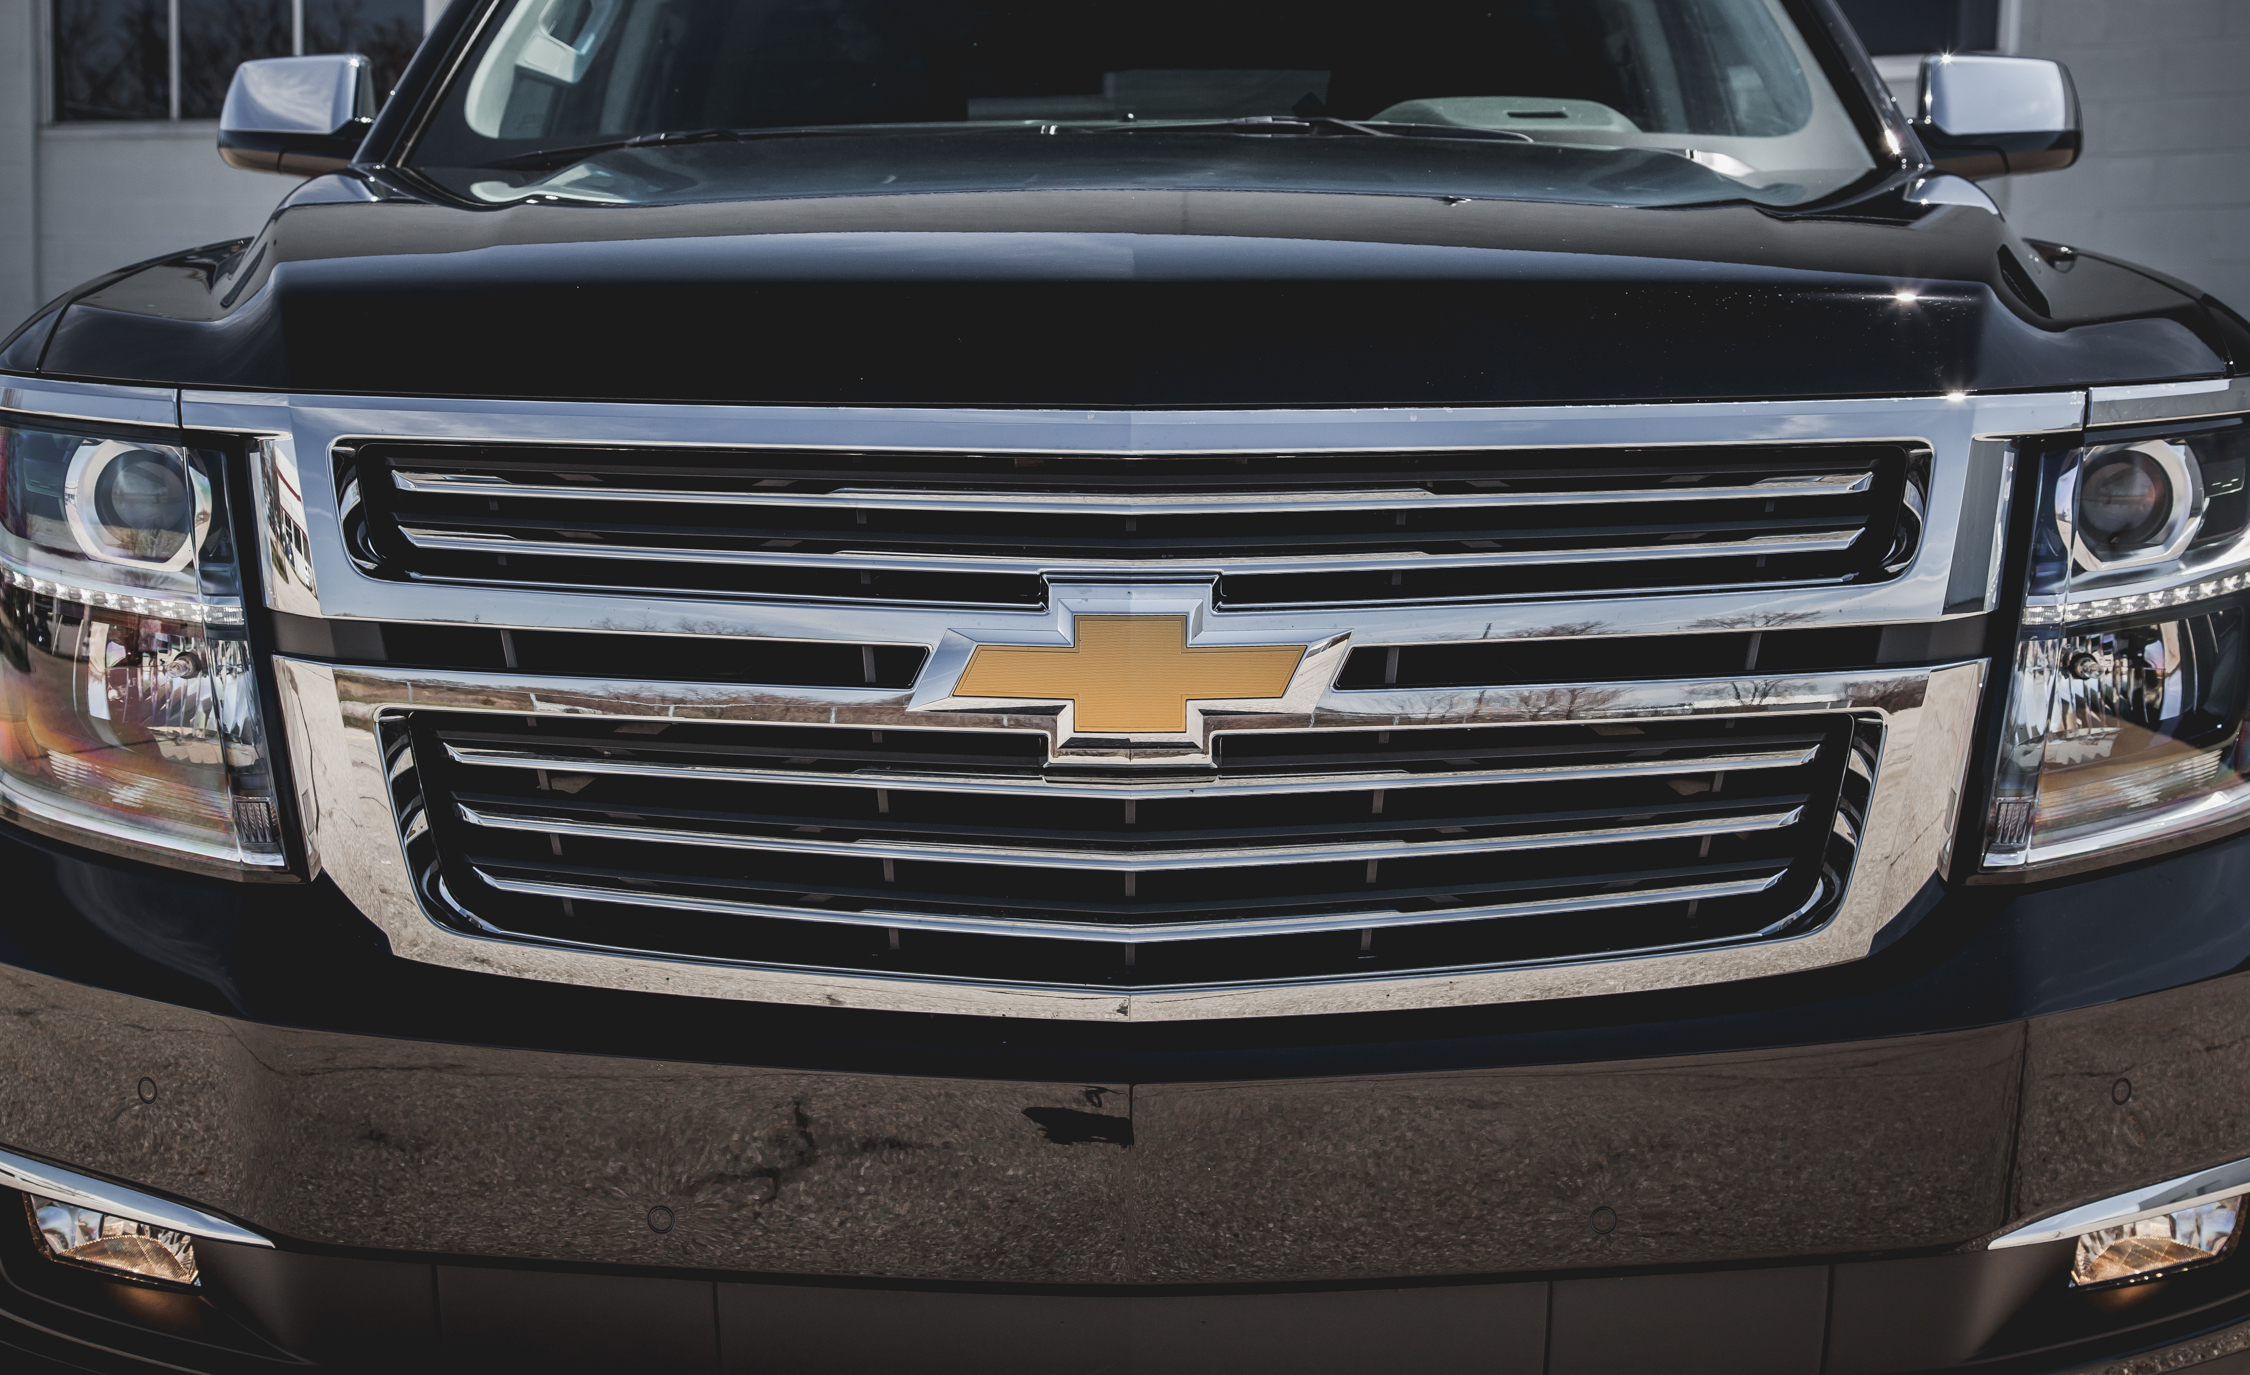 2015 Chevrolet Suburban LTZ Headlights, Badge, And Grille (Photo 15 of 33)